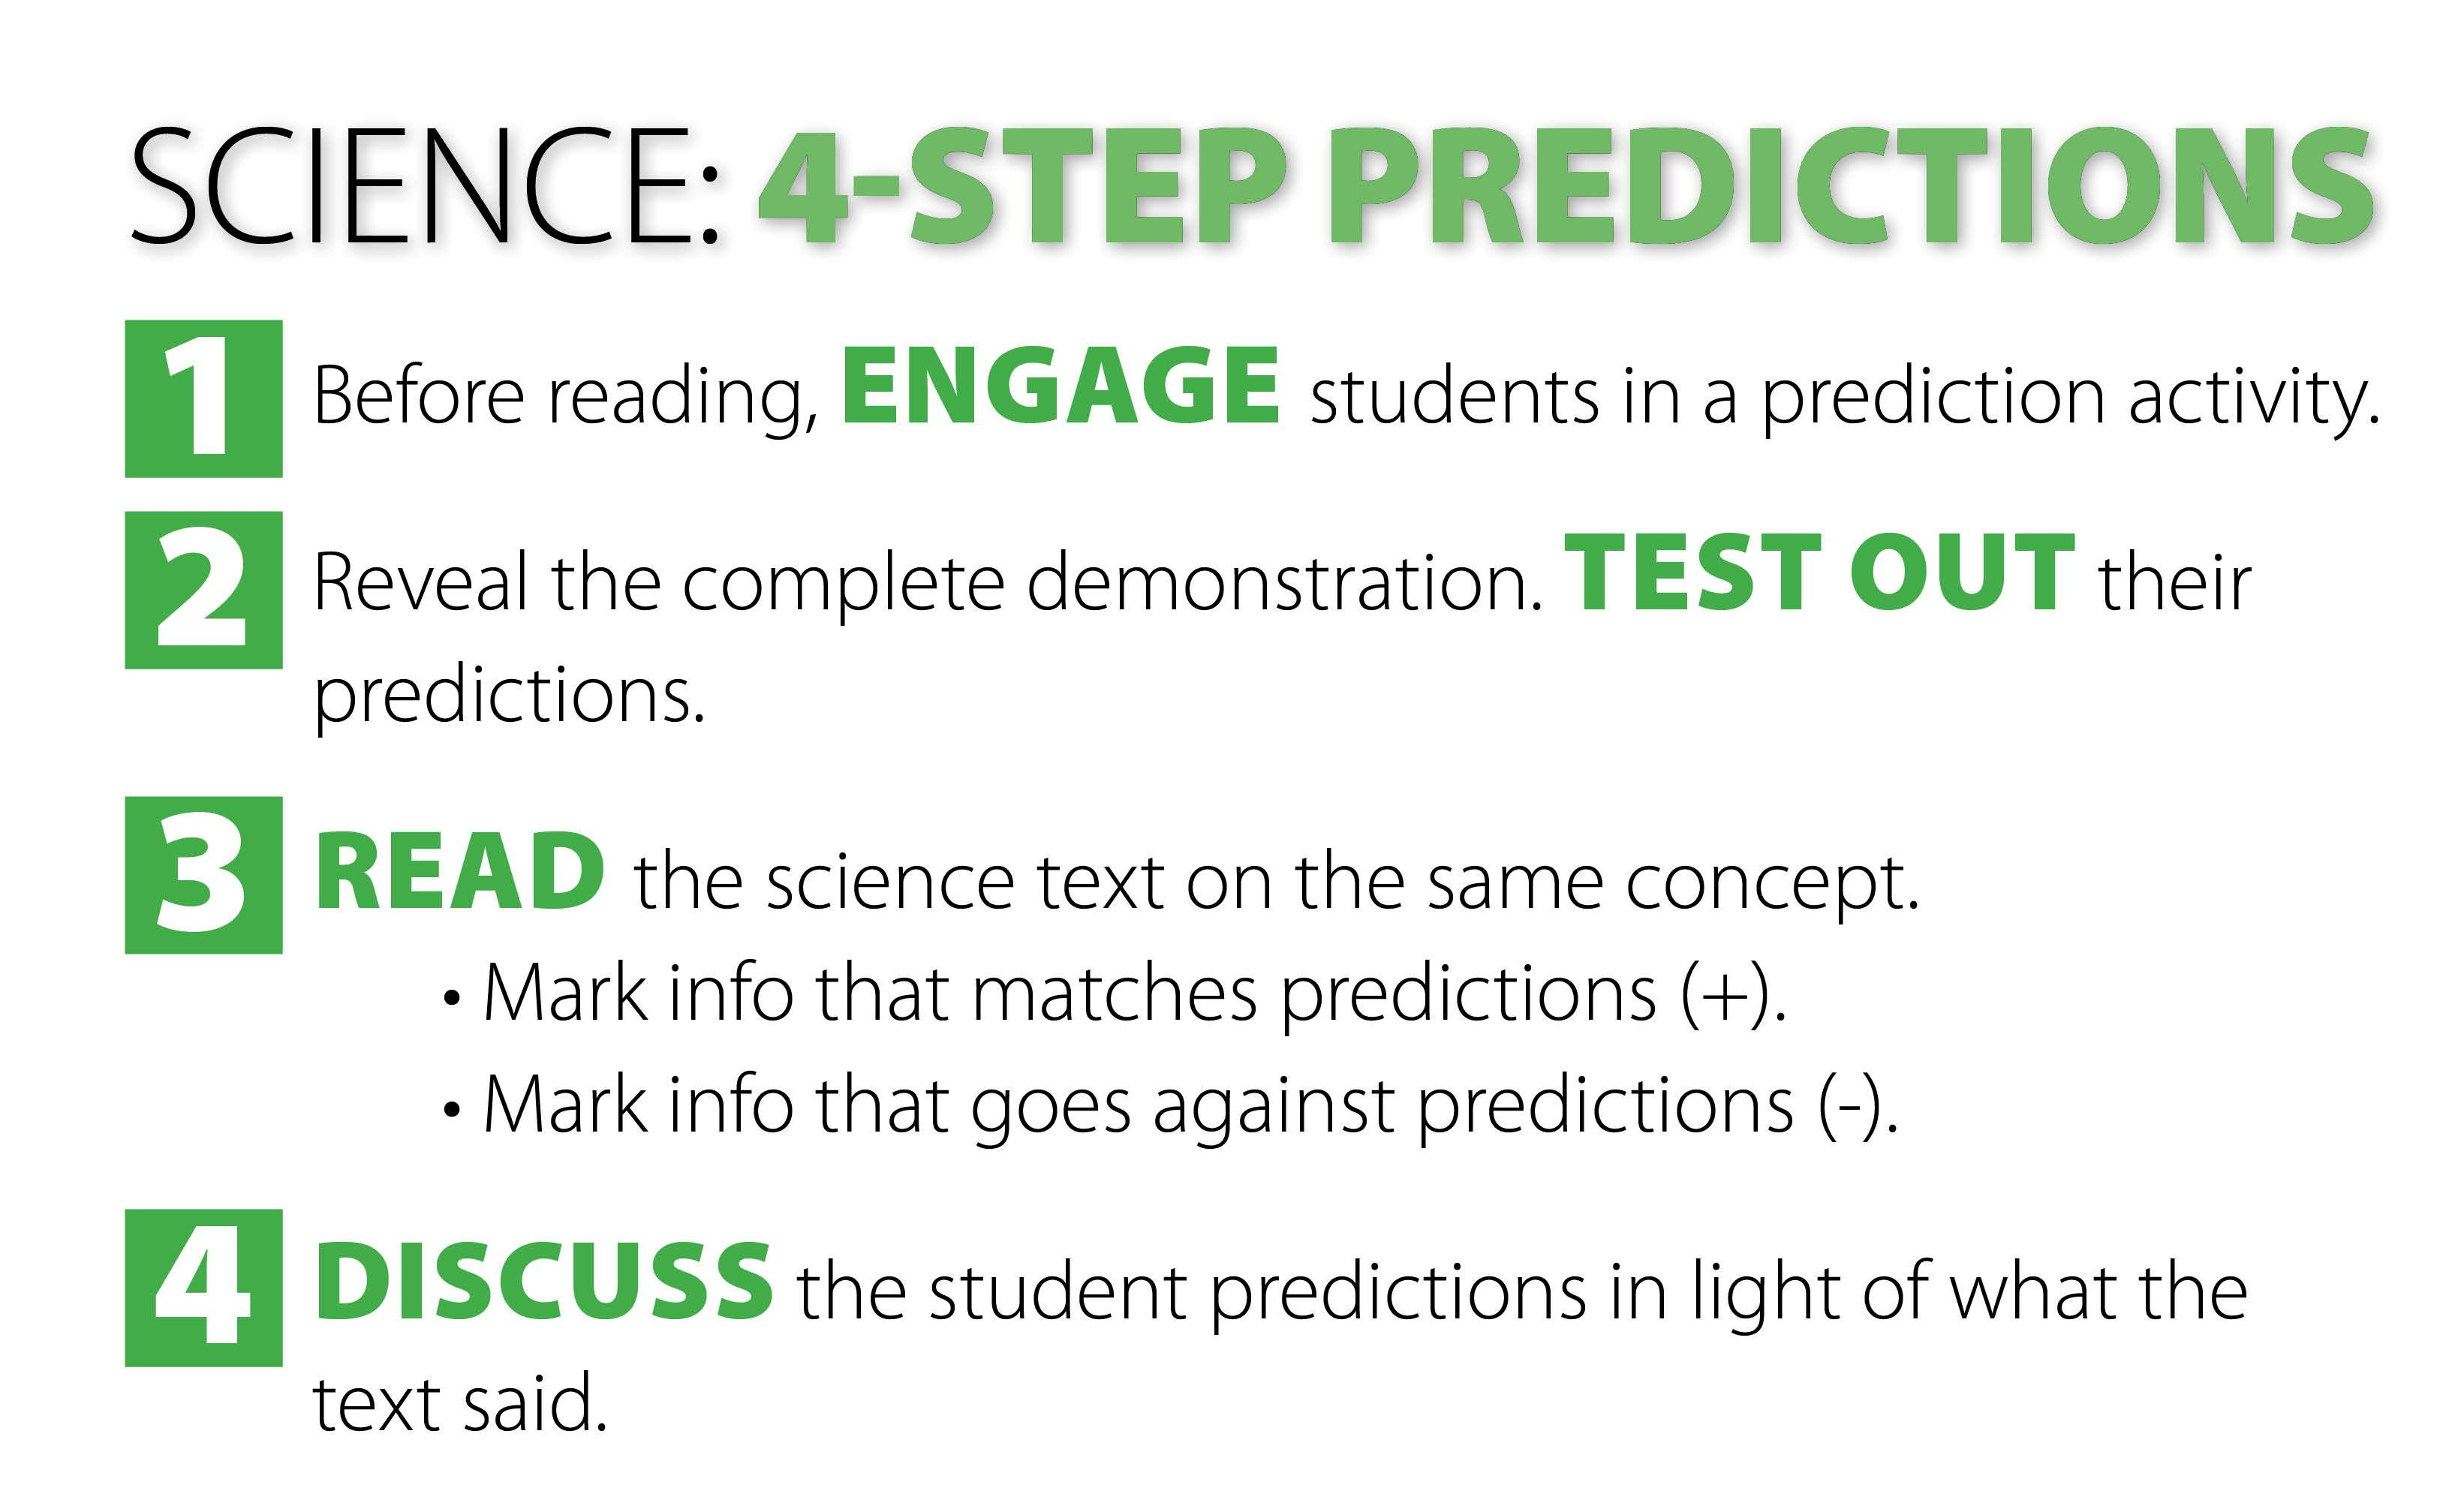 4-Step Predictions in Science